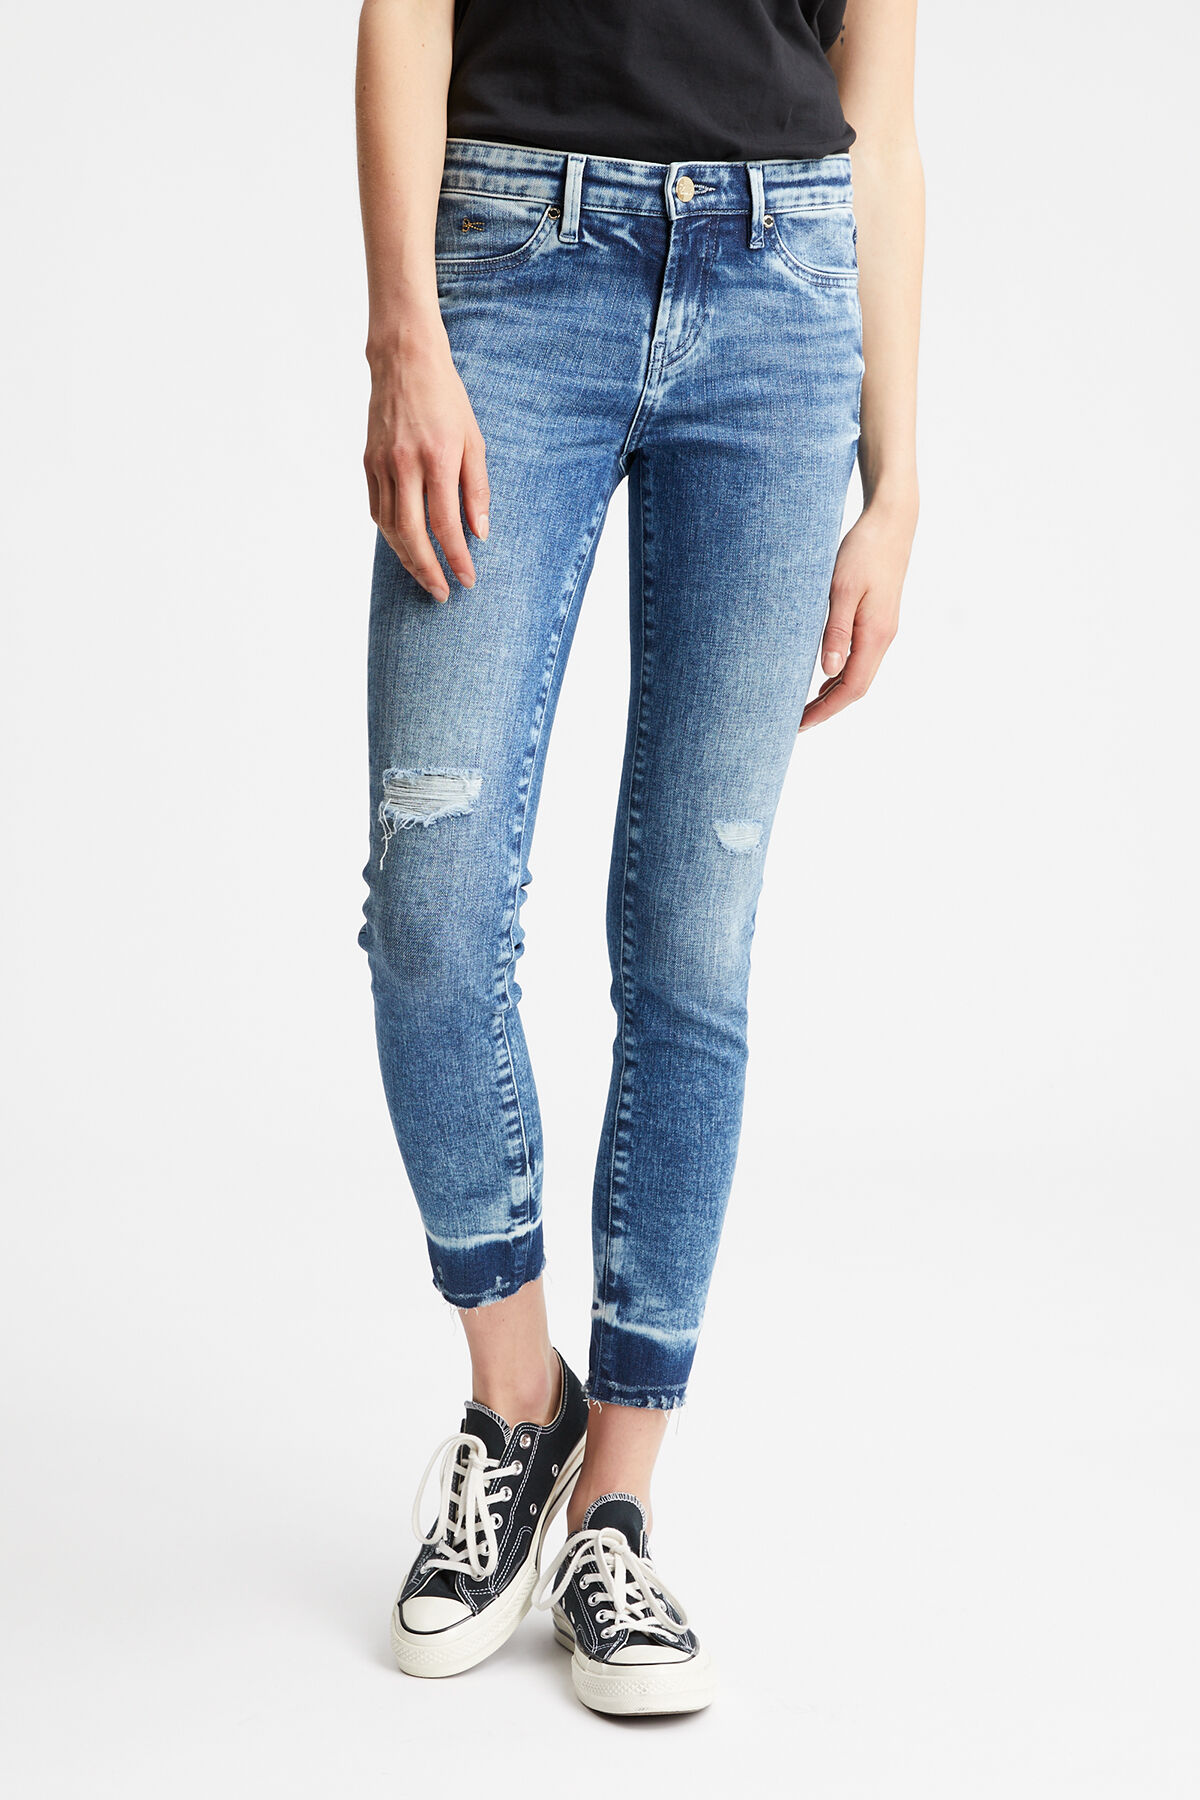 SPRAY Sustainable Rip & Repair Indigo Denim - Mid-rise, Tight Fit